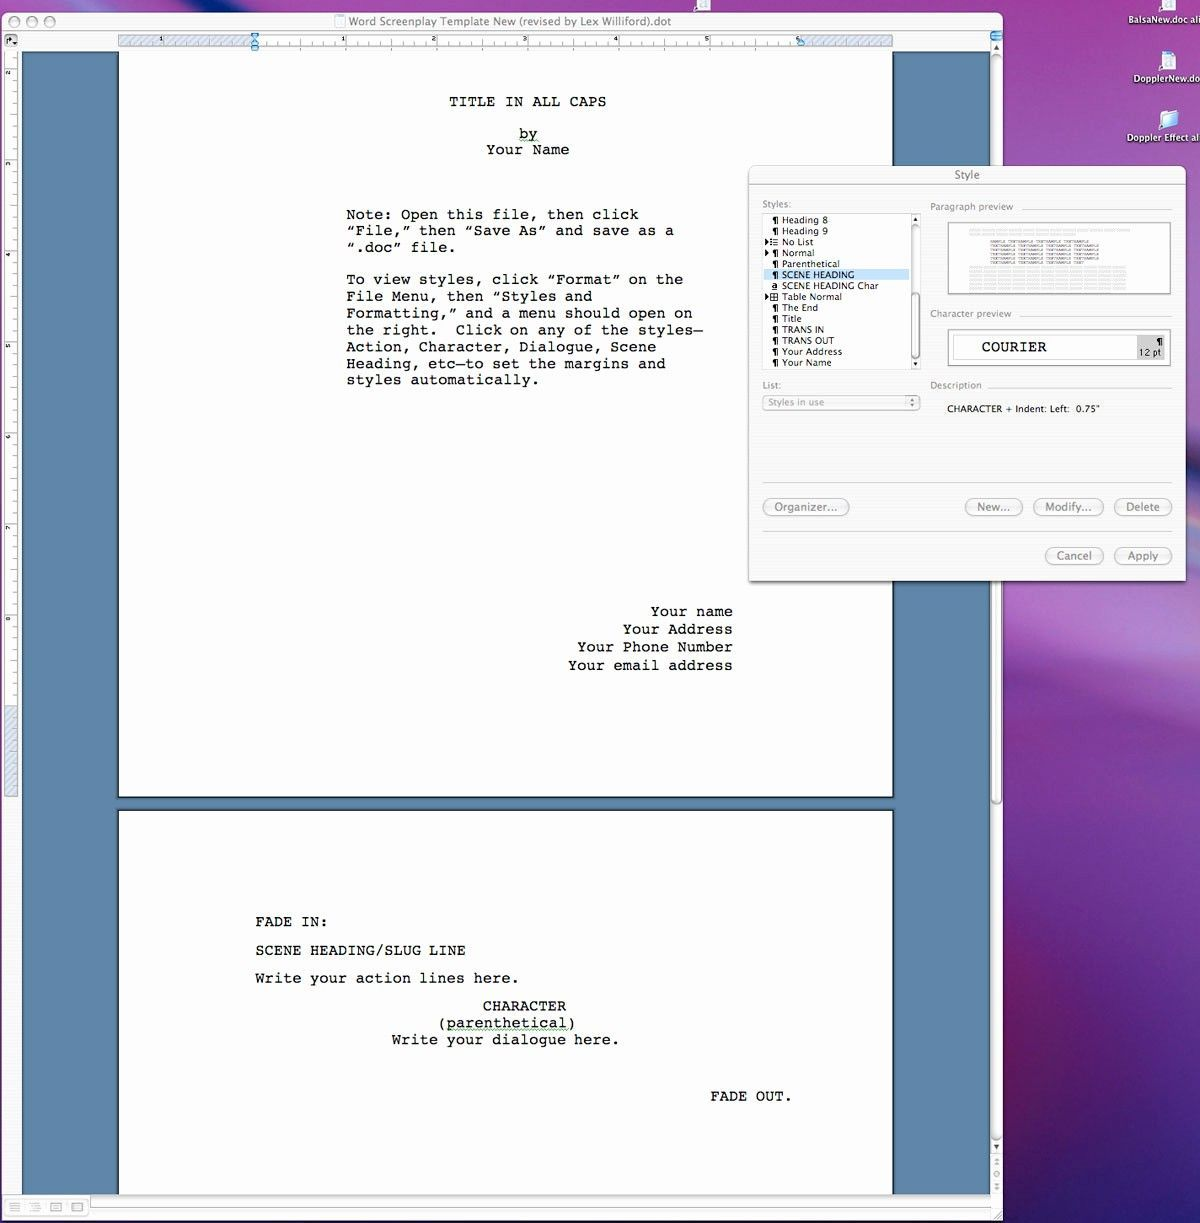 004 Excellent How To Use Microsoft Word Screenplay Template Sample Full